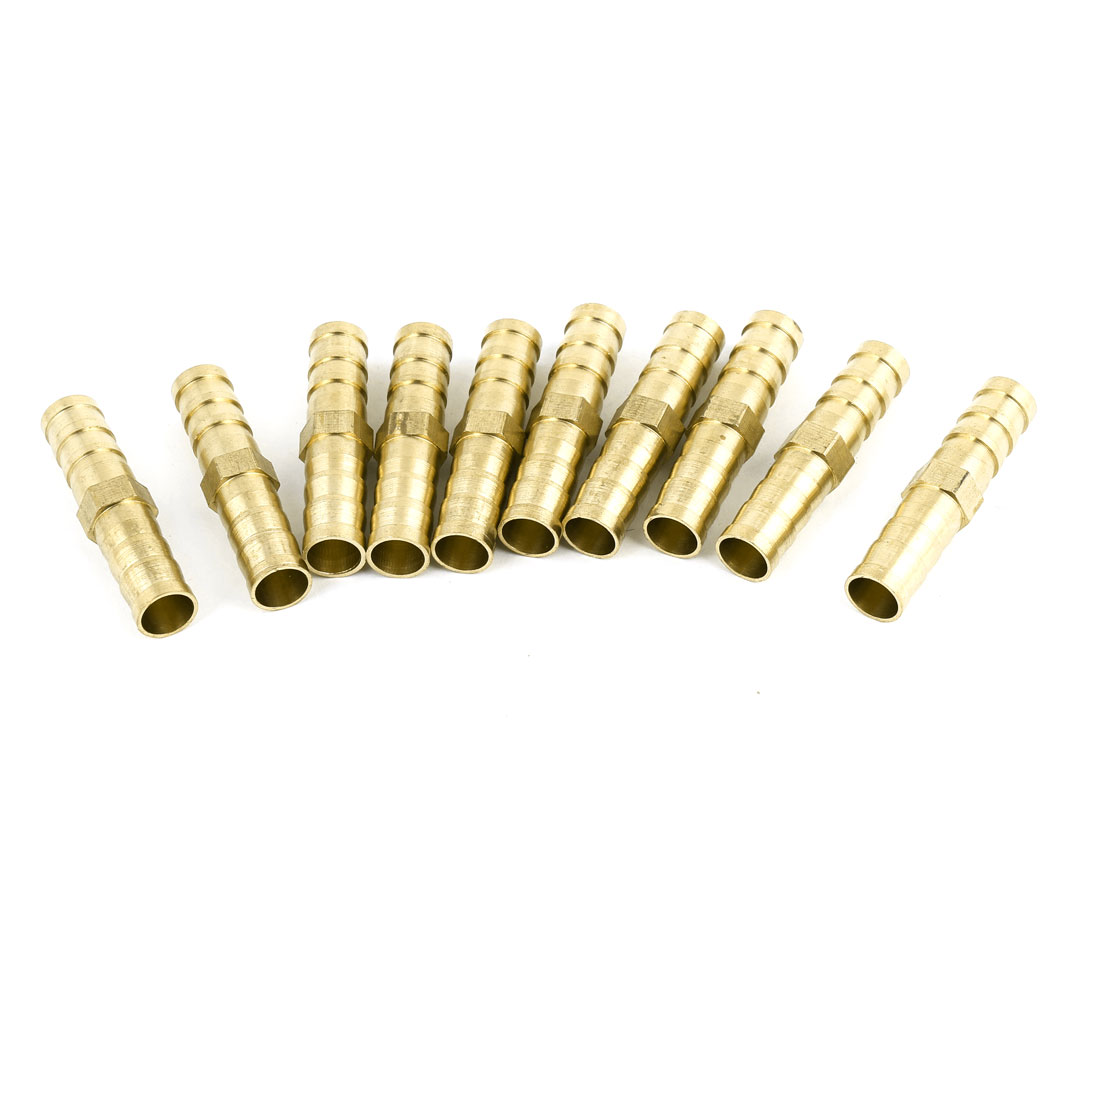 10 Pcs Gold Tone Quick Fittings Barbed Coupler for 8mm Inner Dia Air Pipe Hose